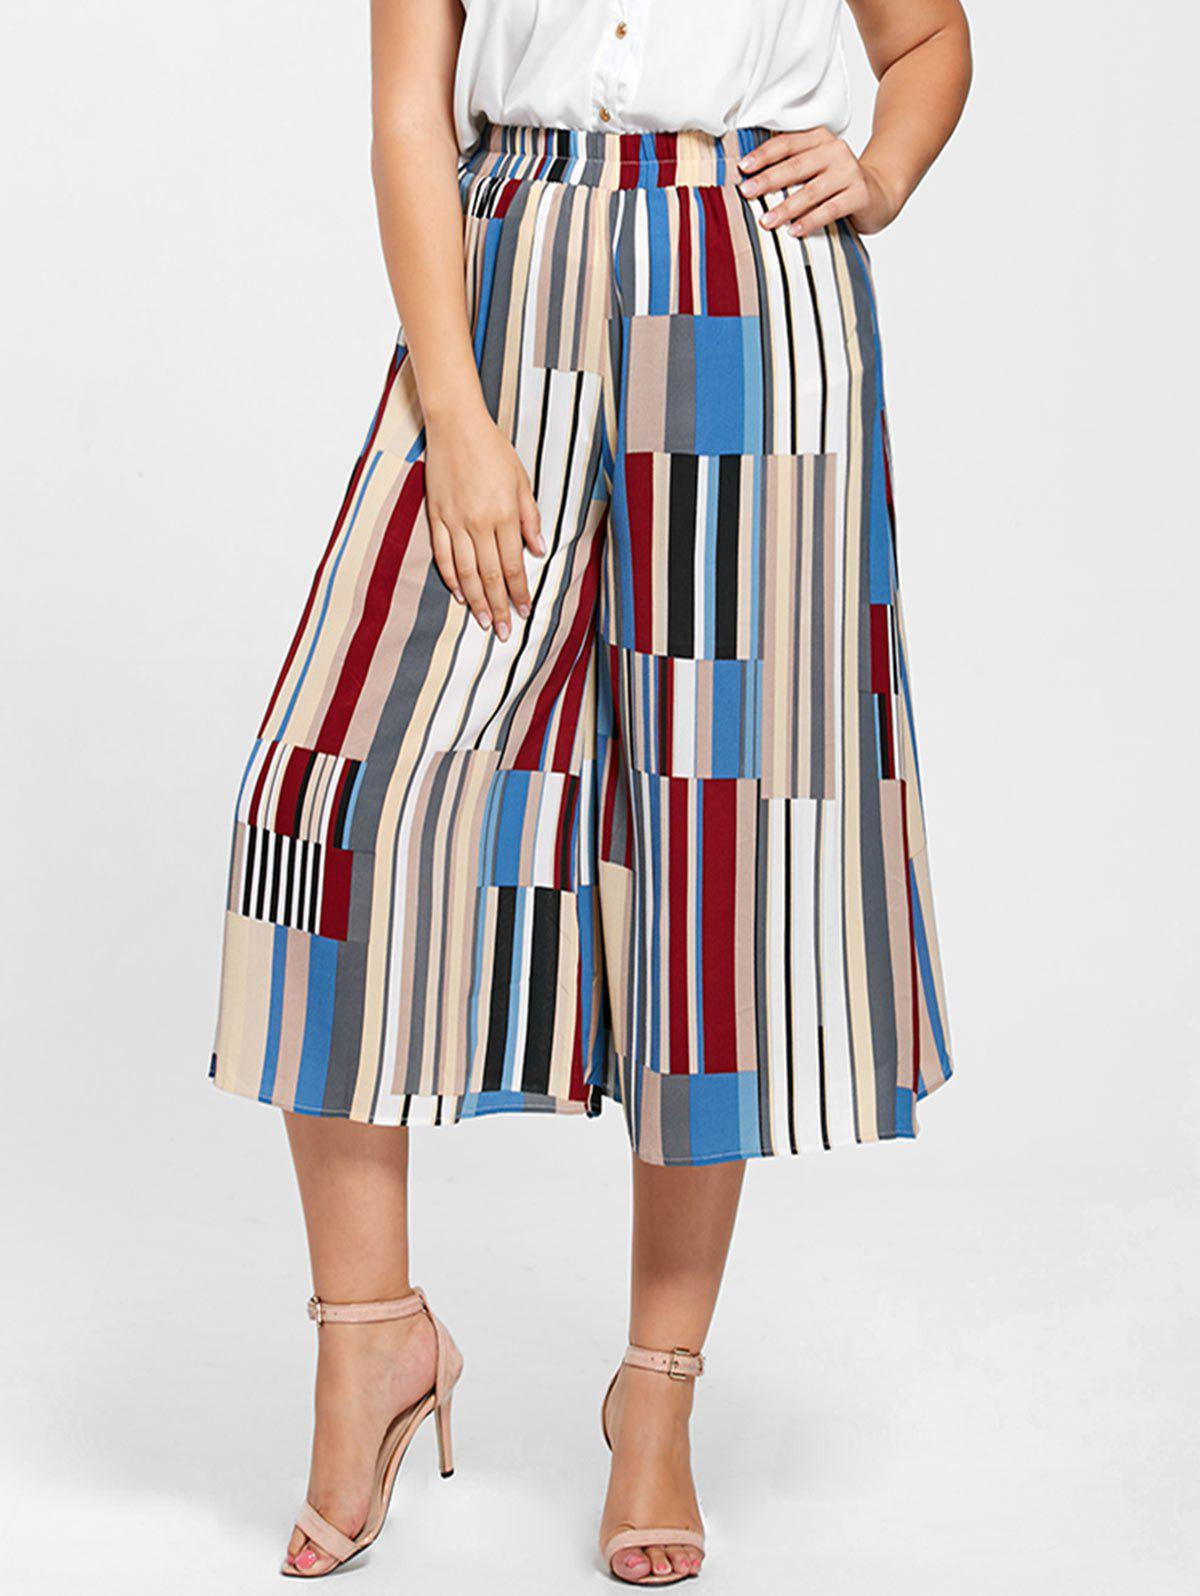 Geometric Print Plus Size Palazzo Capri PantsWOMEN<br><br>Size: 4XL; Color: MULTICOLOR; Style: Fashion; Length: Capri; Material: Polyester; Fit Type: Loose; Waist Type: Mid; Closure Type: Elastic Waist; Pattern Type: Geometric; Pant Style: Wide Leg Pants; With Belt: No; Weight: 0.3100kg; Package Contents: 1 x Pants;